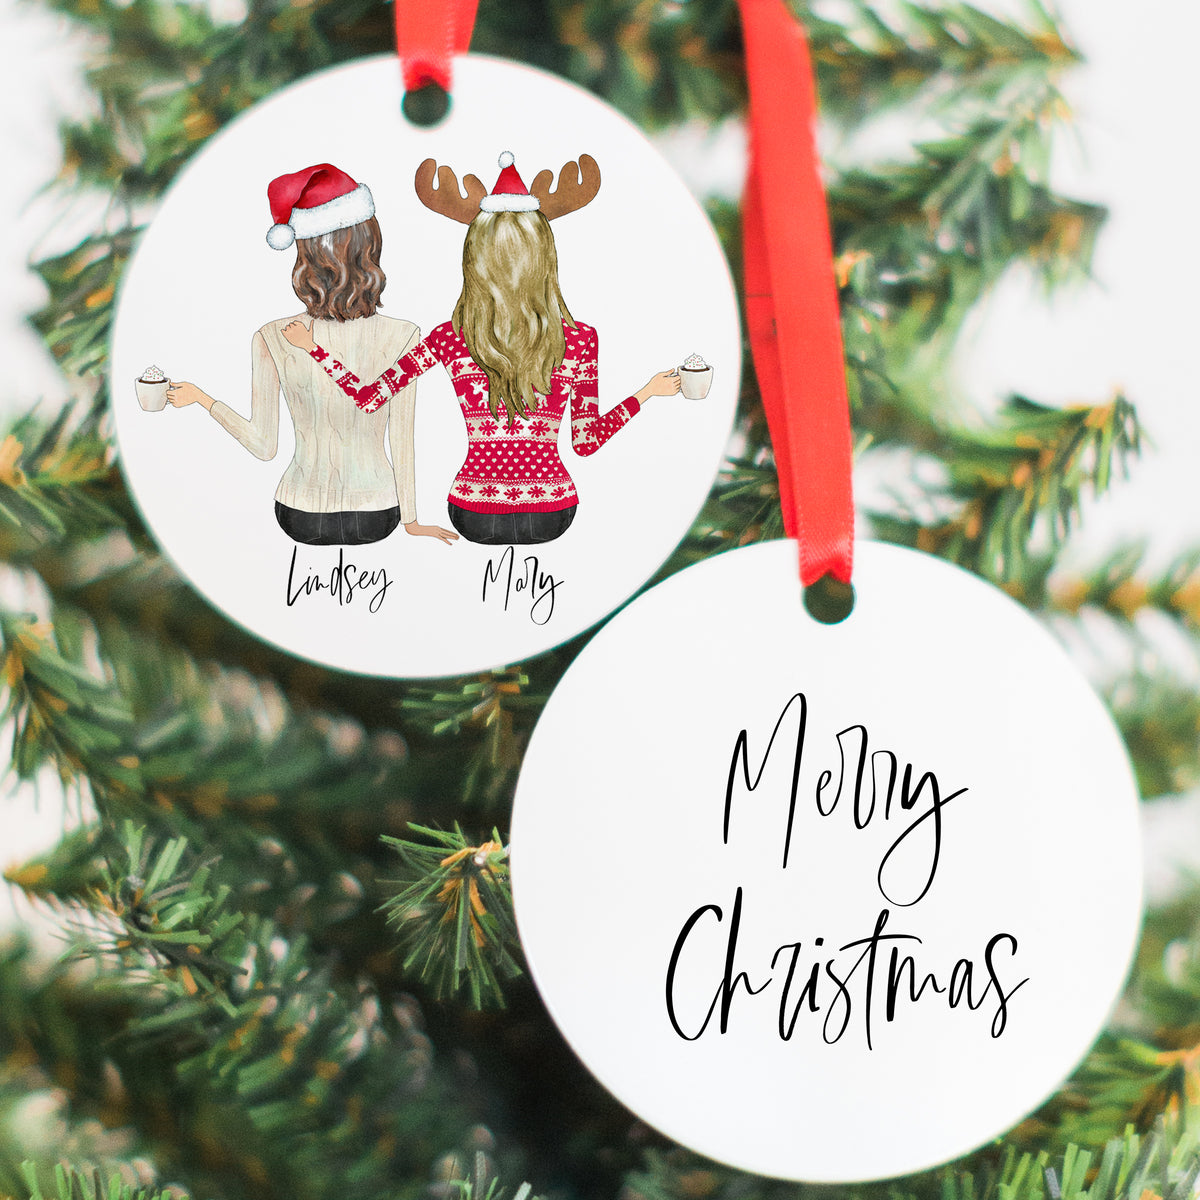 The Holiday Portraits Candle & Ornament Gift Set